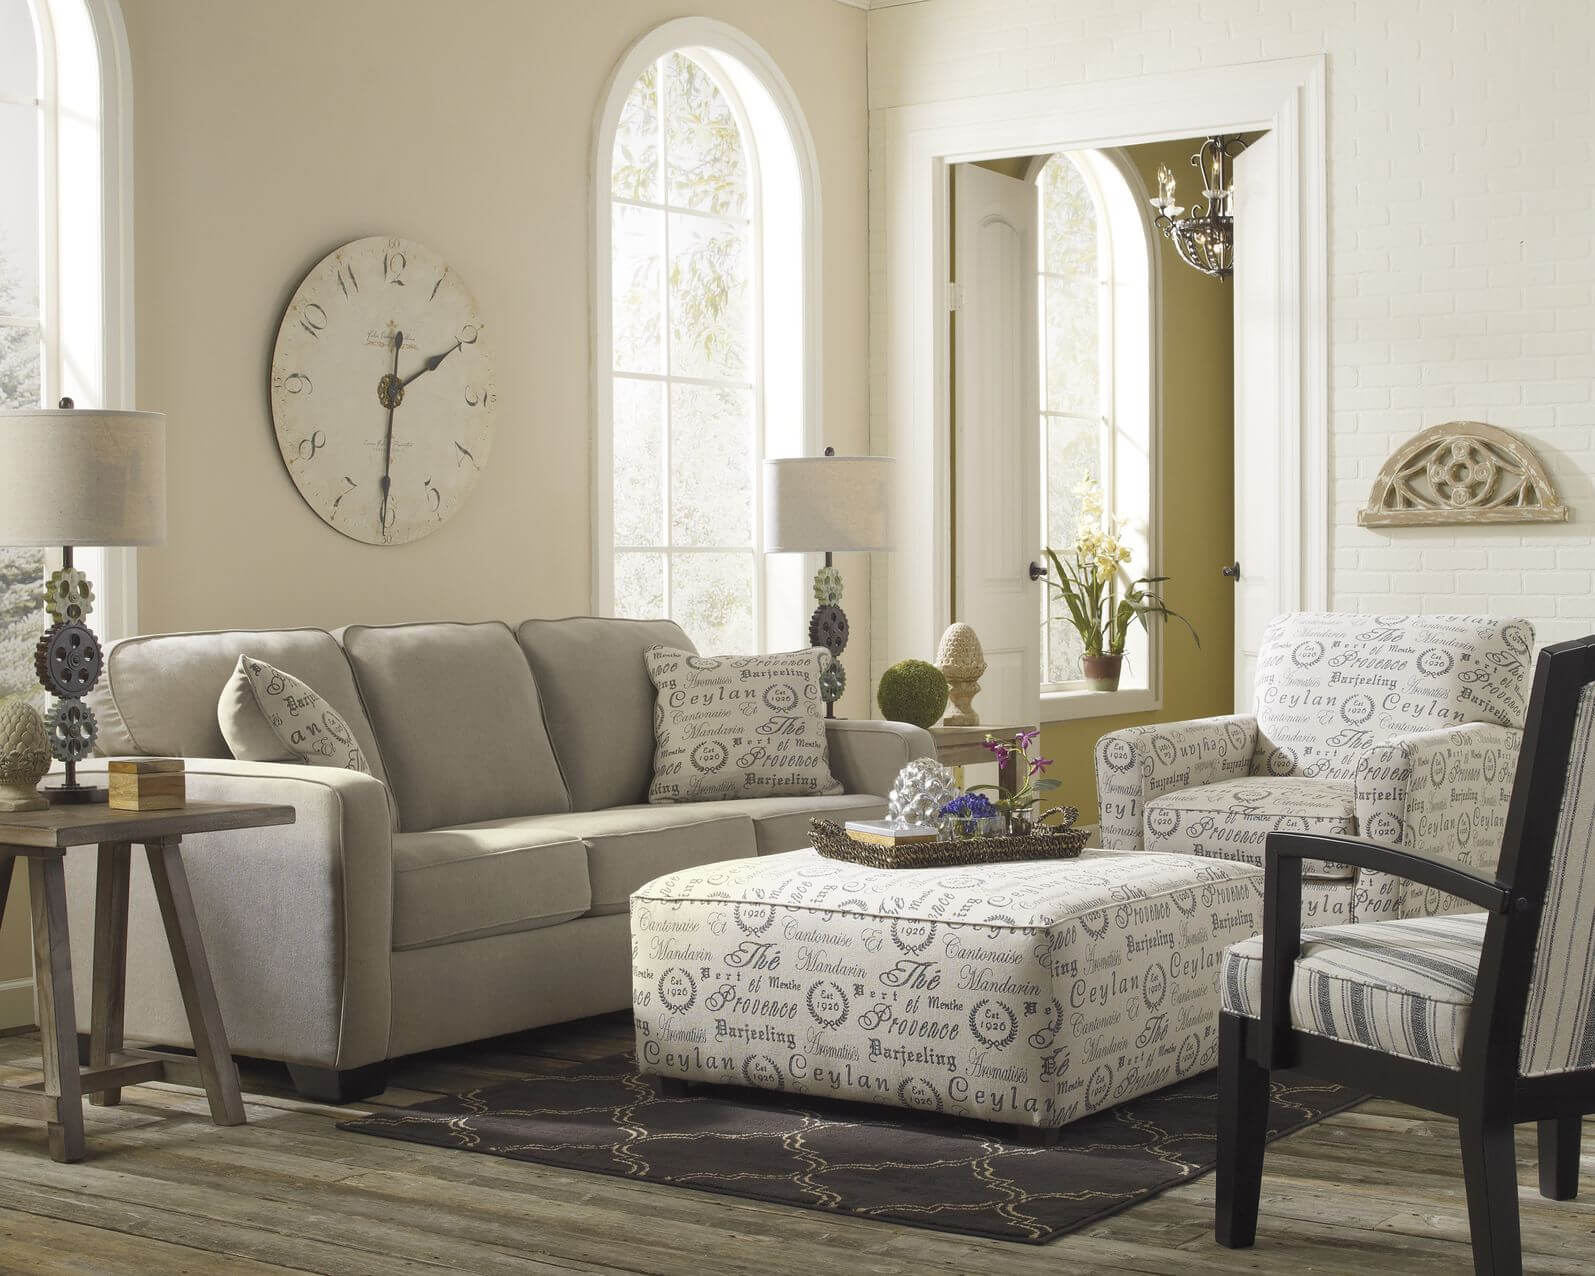 Beau Light Toned Living Room Stands Over Grey Hardwood Flooring, With Neutral  Grey Sofa Next To